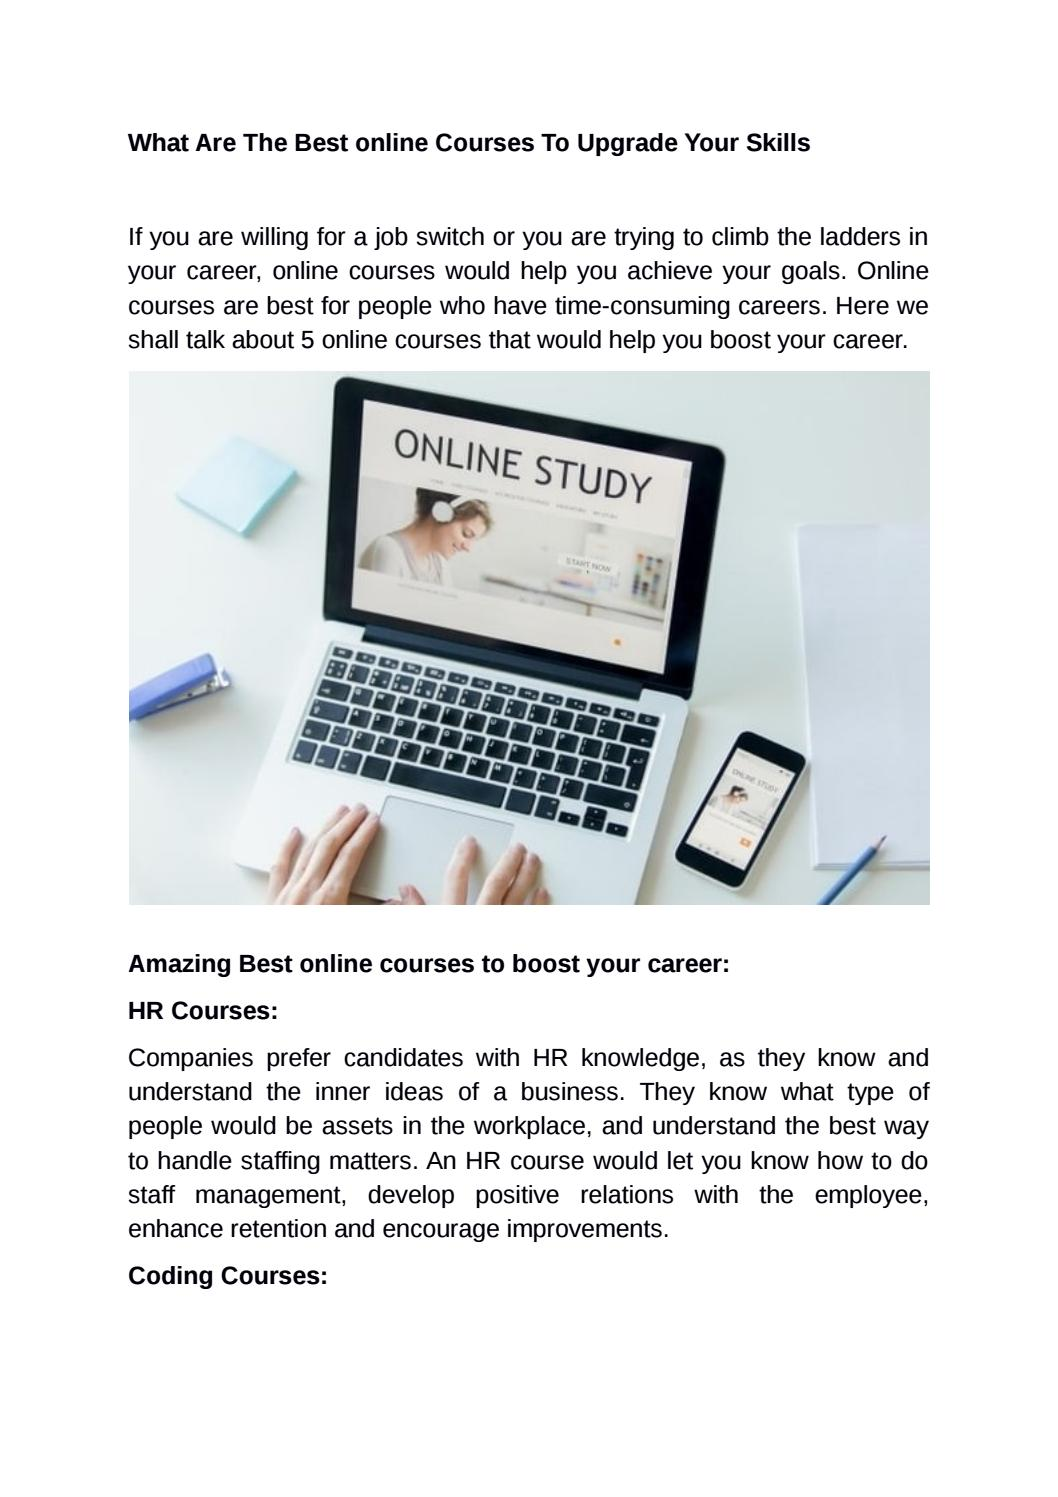 What Are The Best online Courses To Upgrade Your Skills by